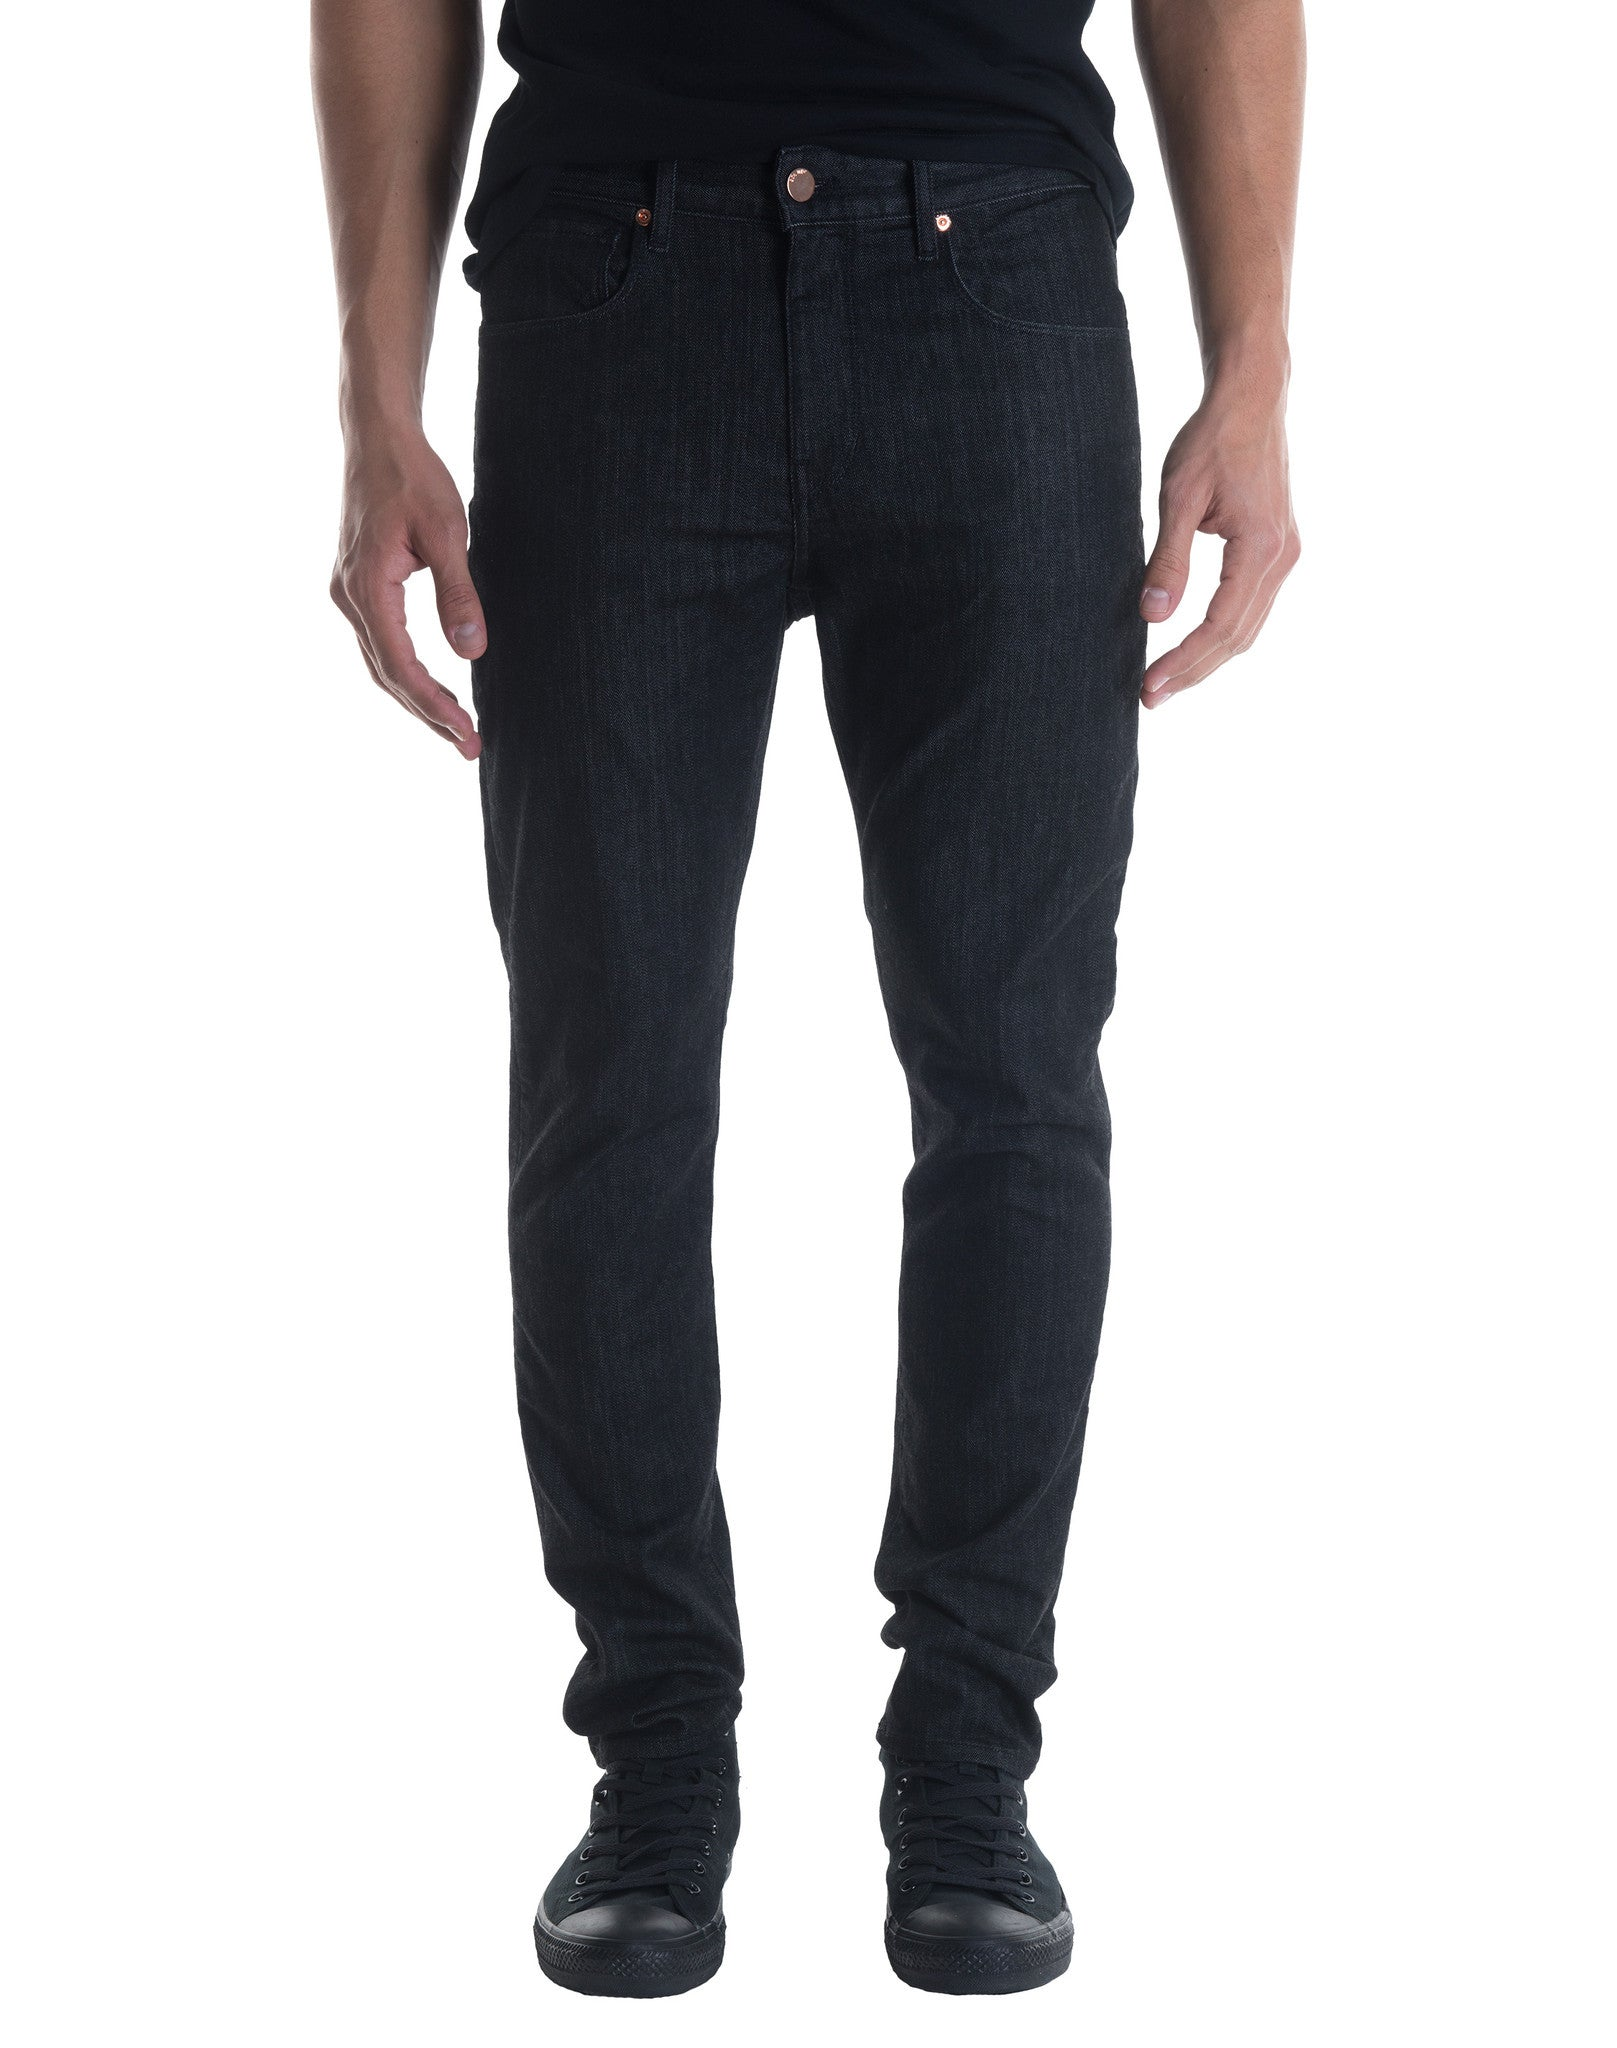 Beta Denim Black